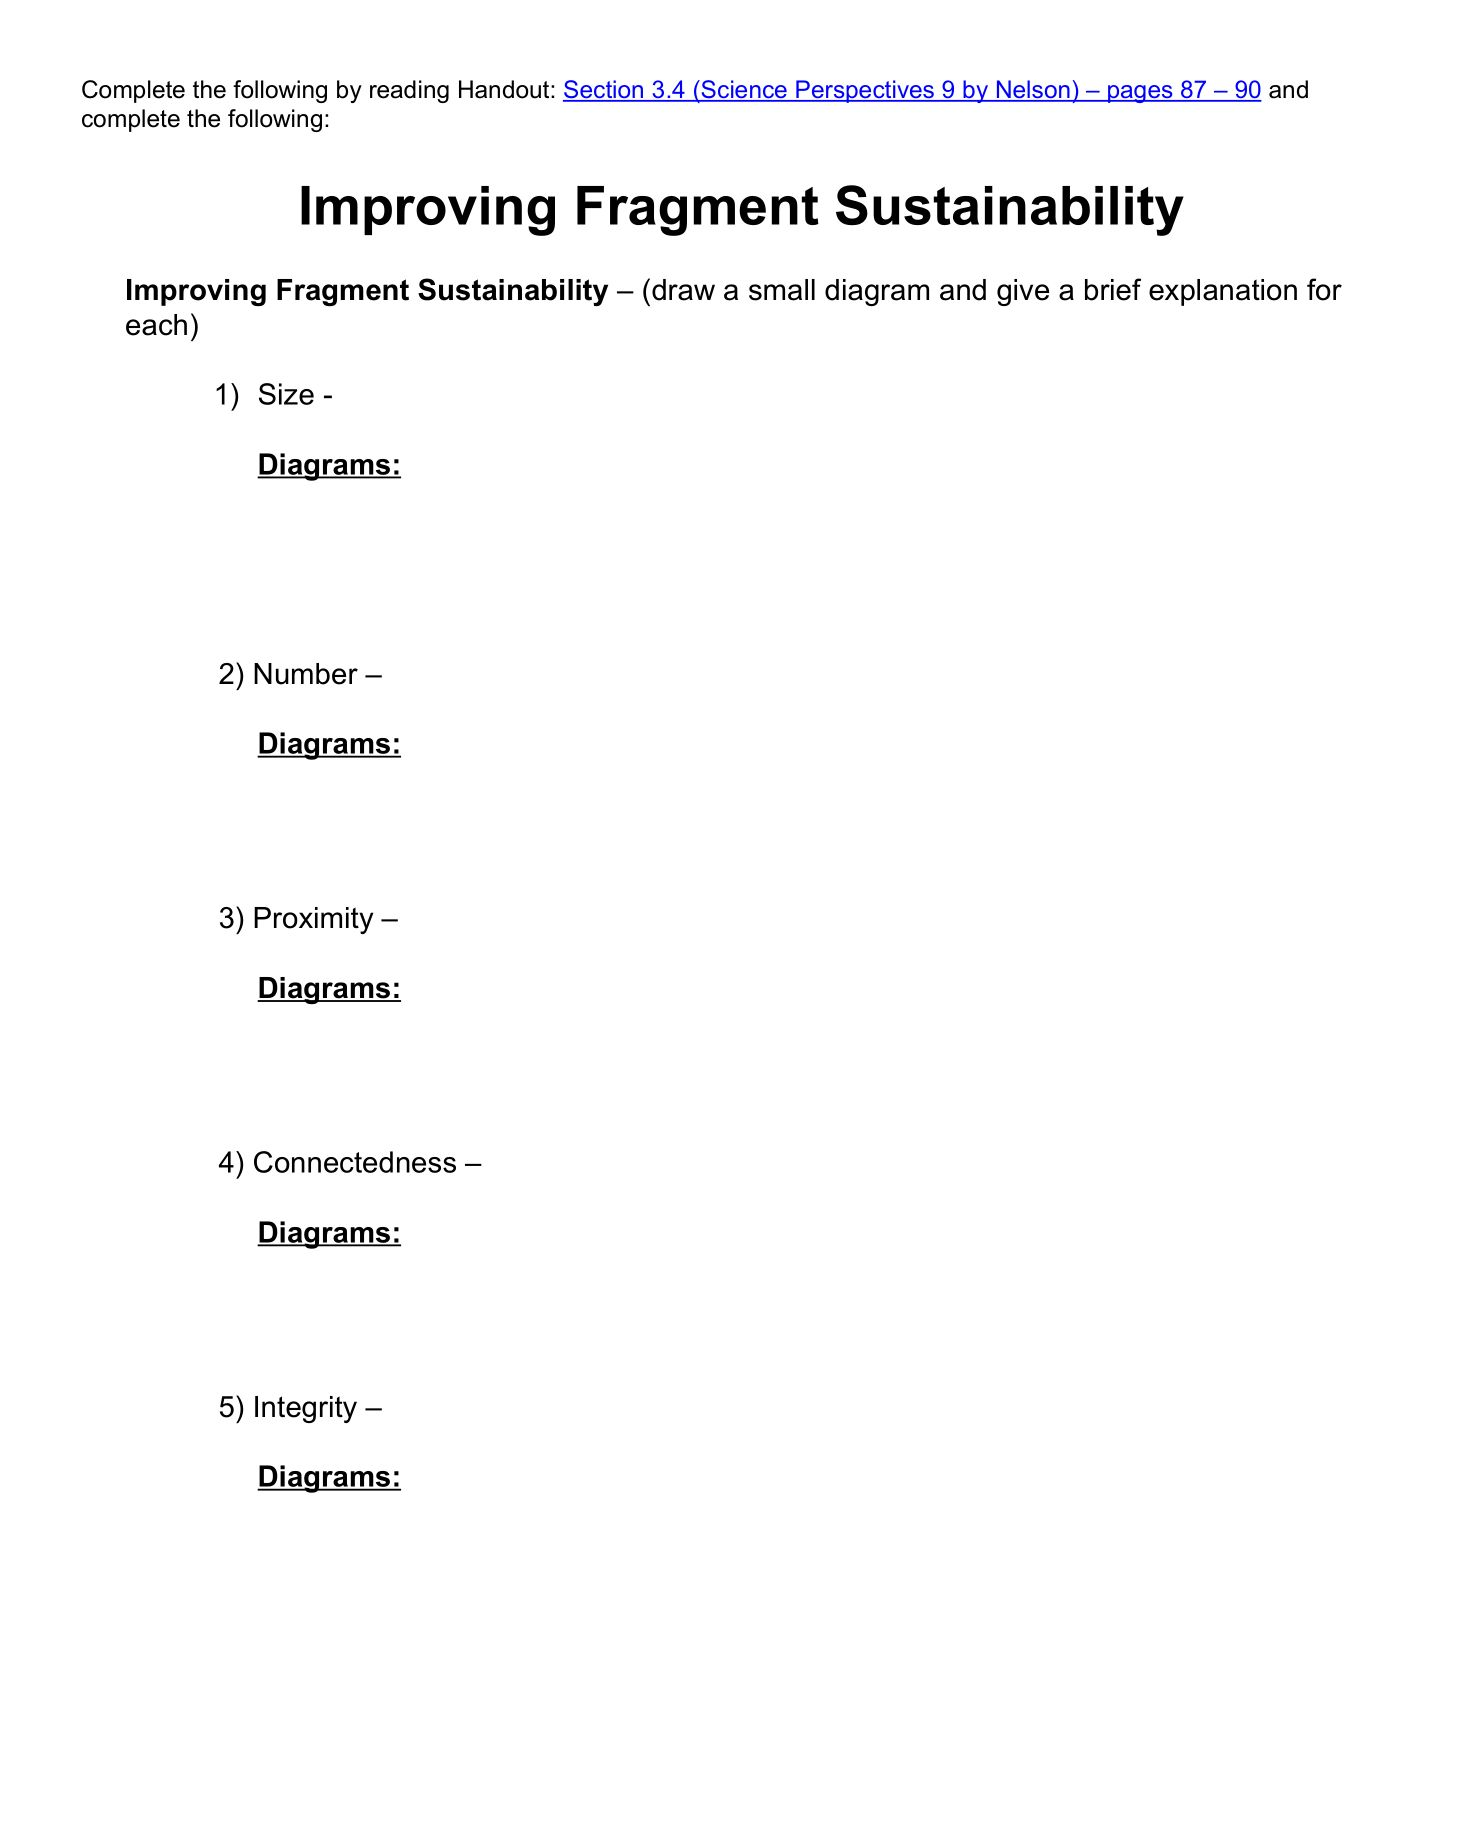 Improving Fragment Sustainability